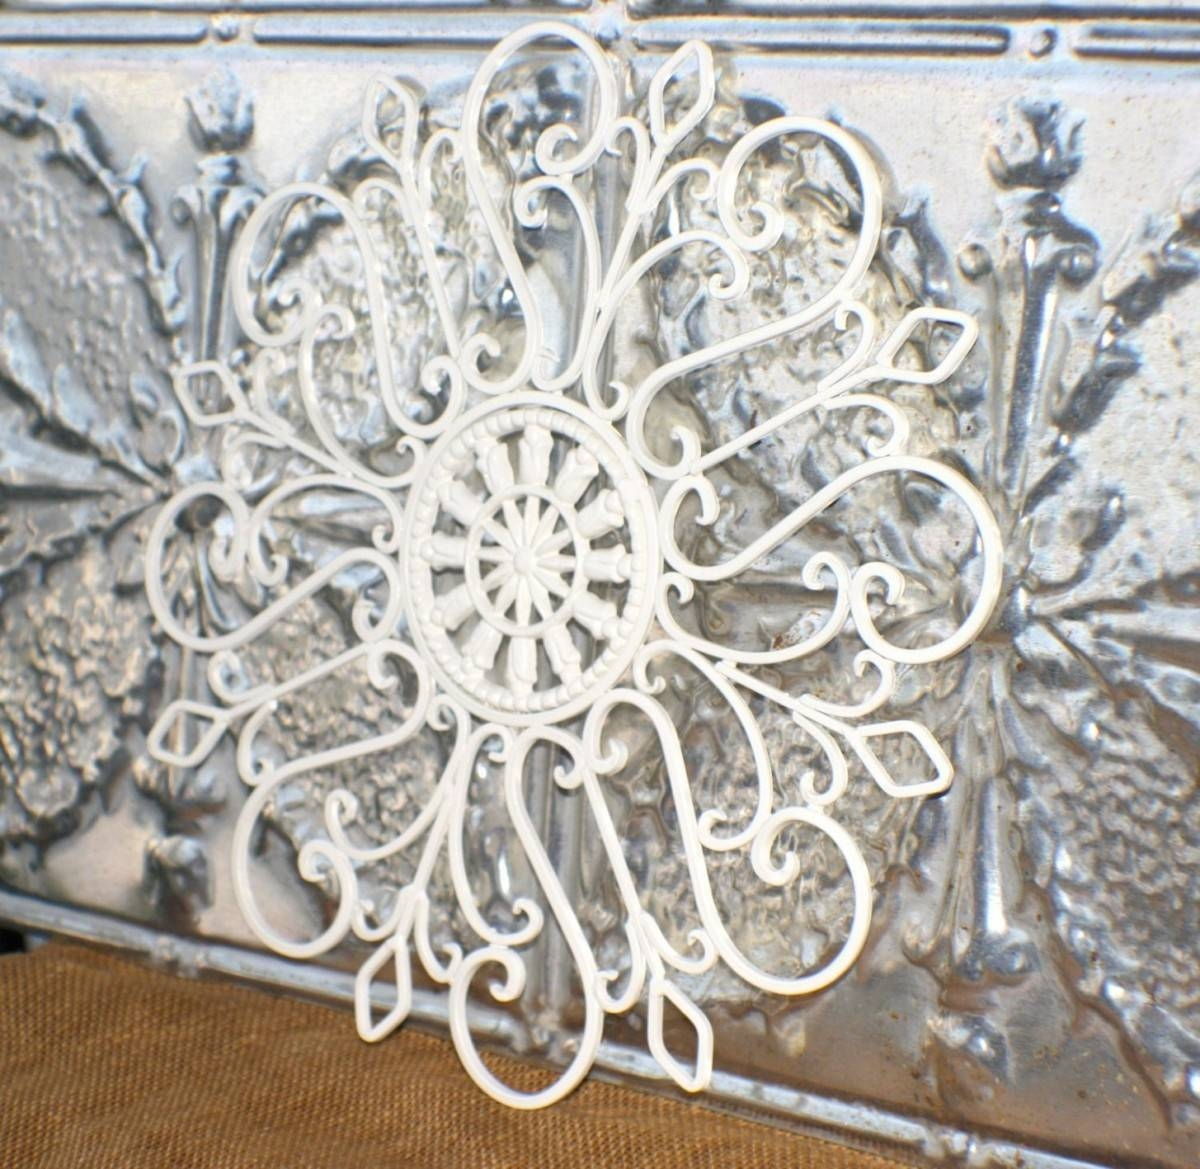 Awesome Metal Wall Art Decor And Sculptures Pertaining To Most Current Metal Wall Art Decor And Sculptures (View 3 of 20)